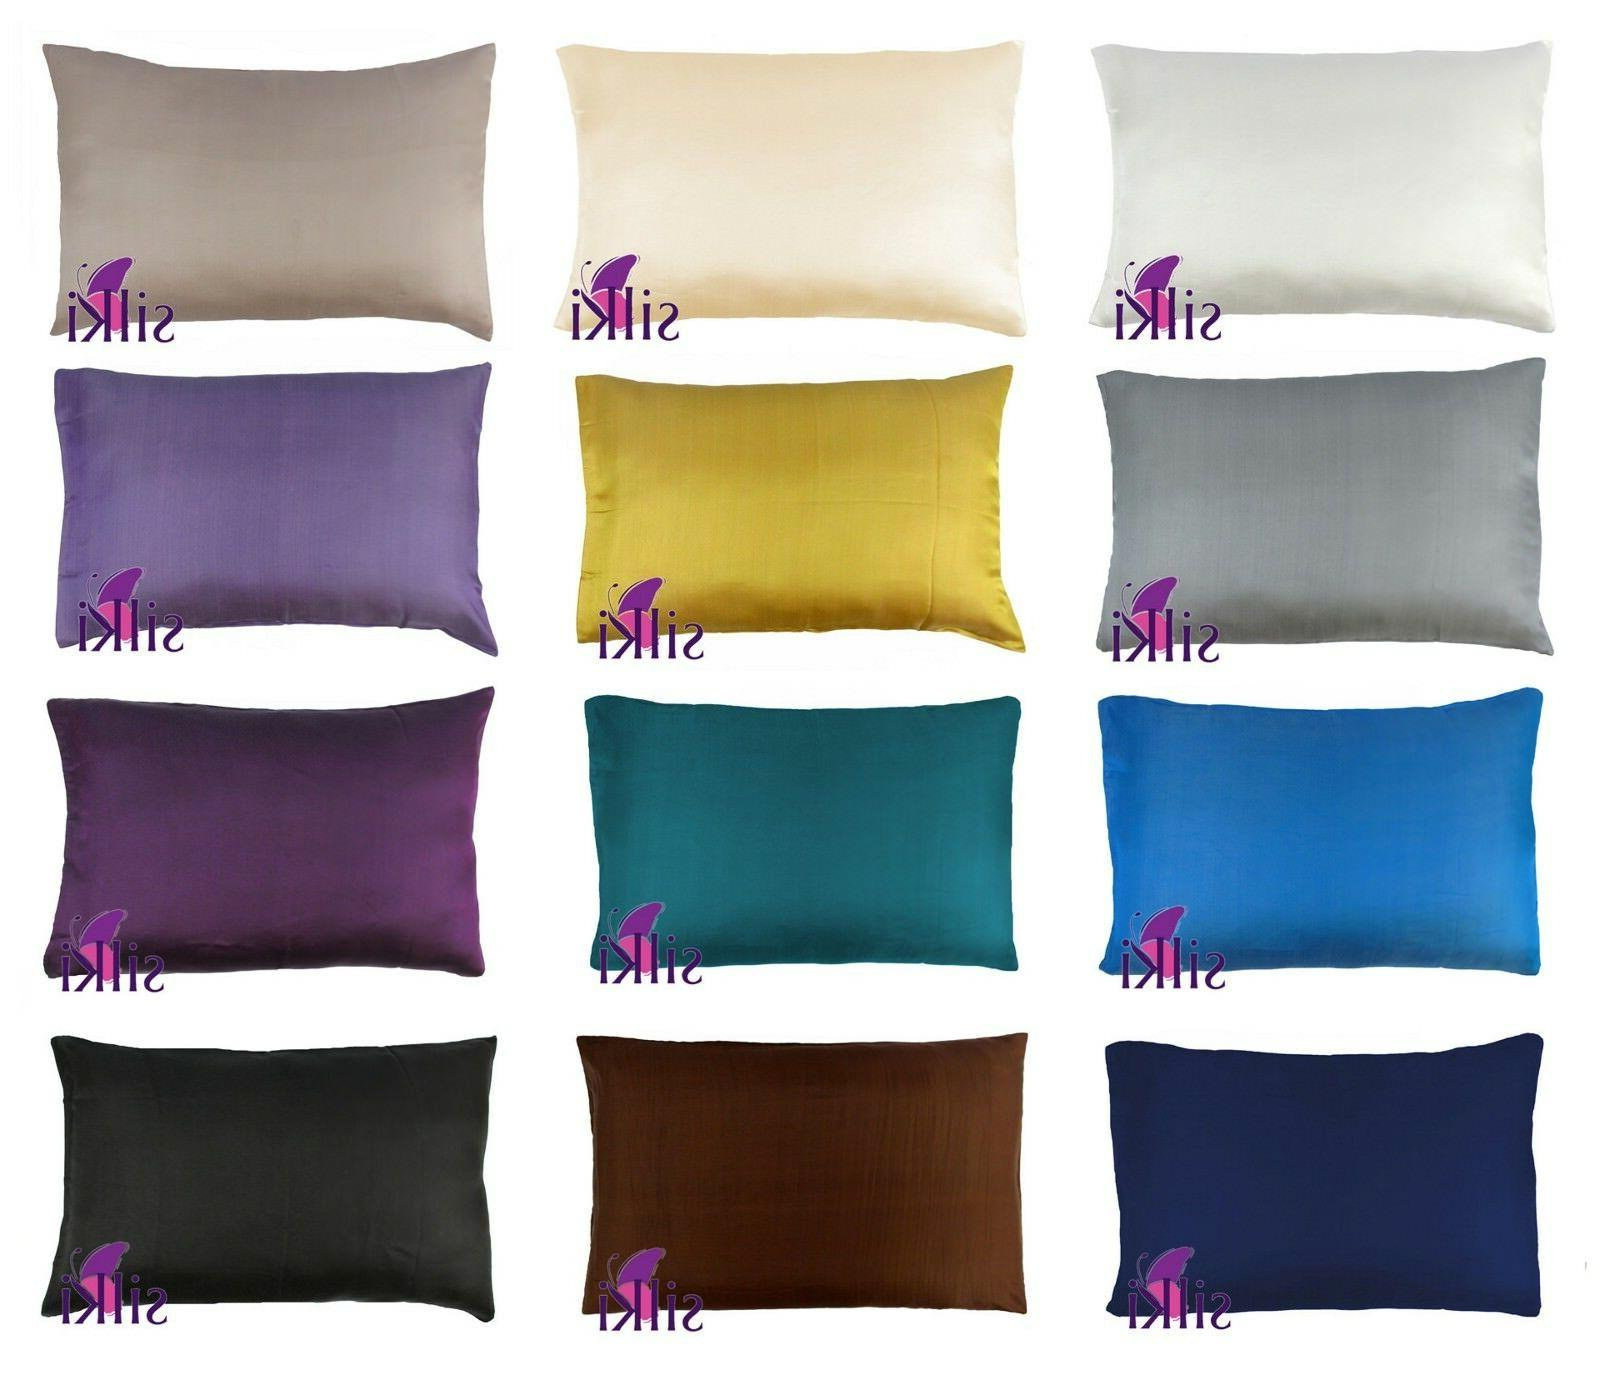 1 pc: 100% Pure 25 momme Mulberry Silk Facial Beauty Pillowc